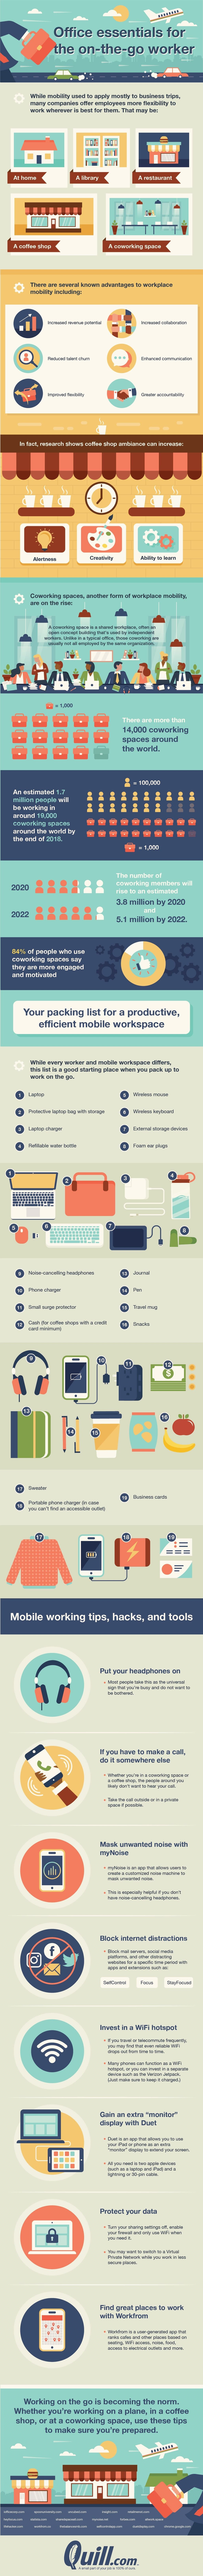 Office essentials for the on-the-go worker #infographic